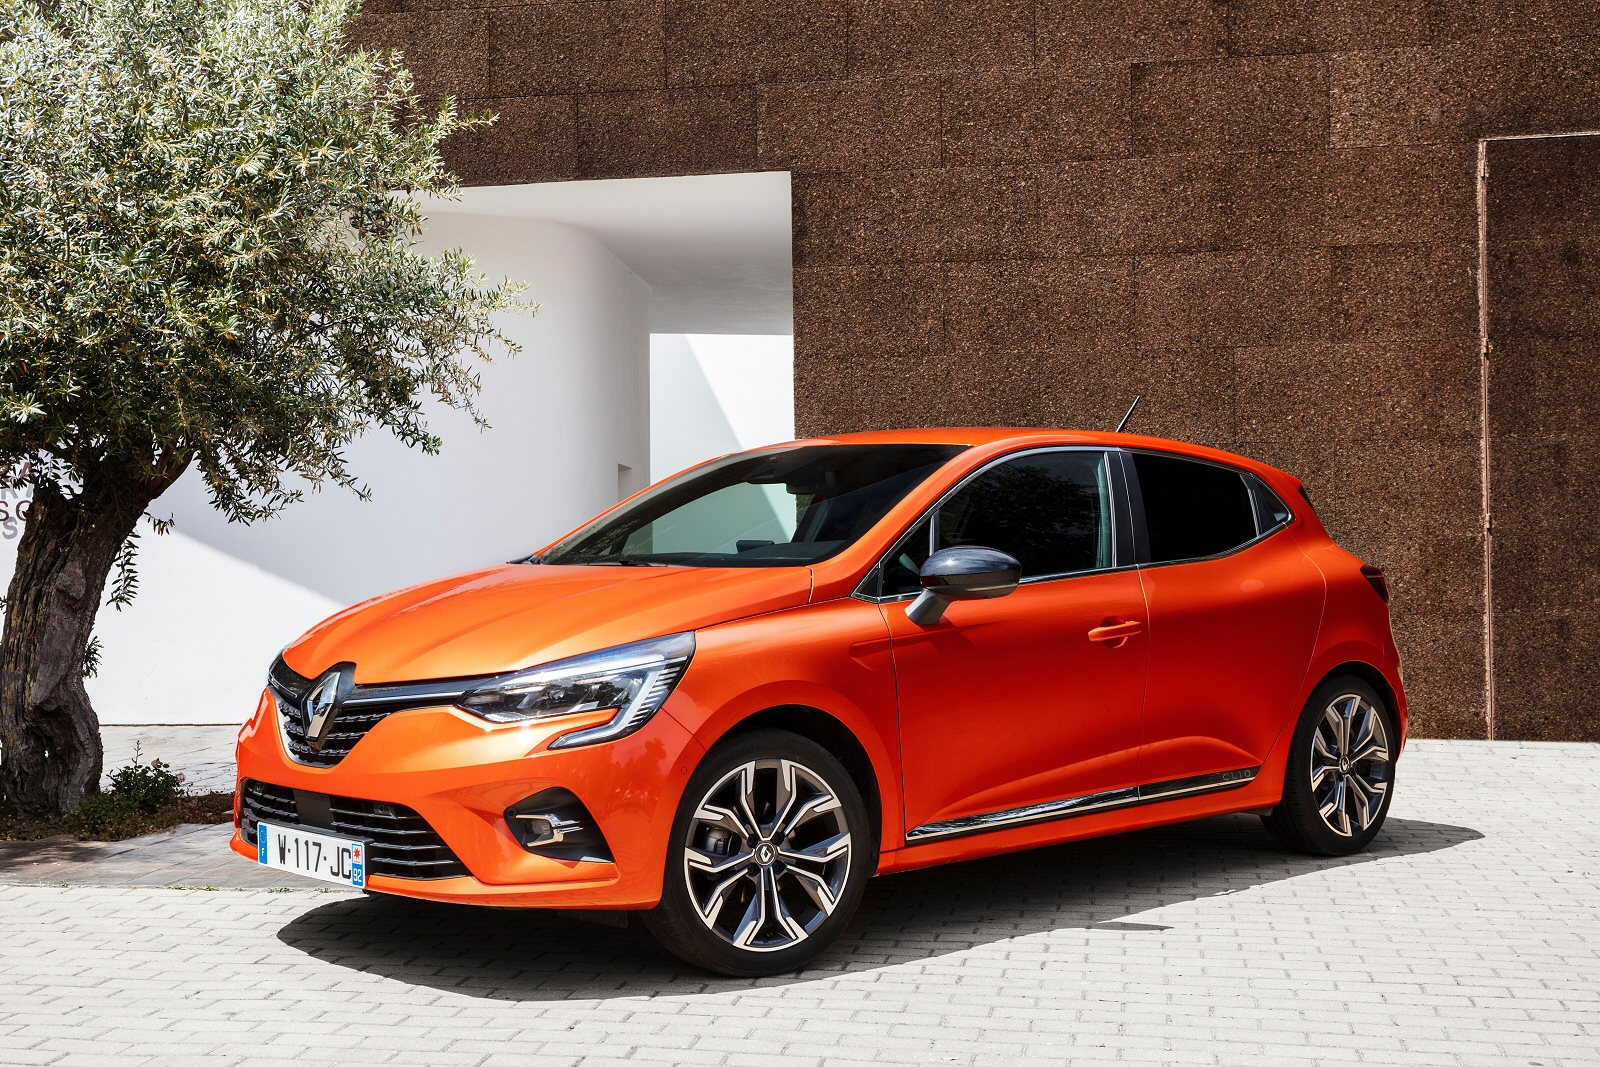 Renault Clio 2020 Car Review